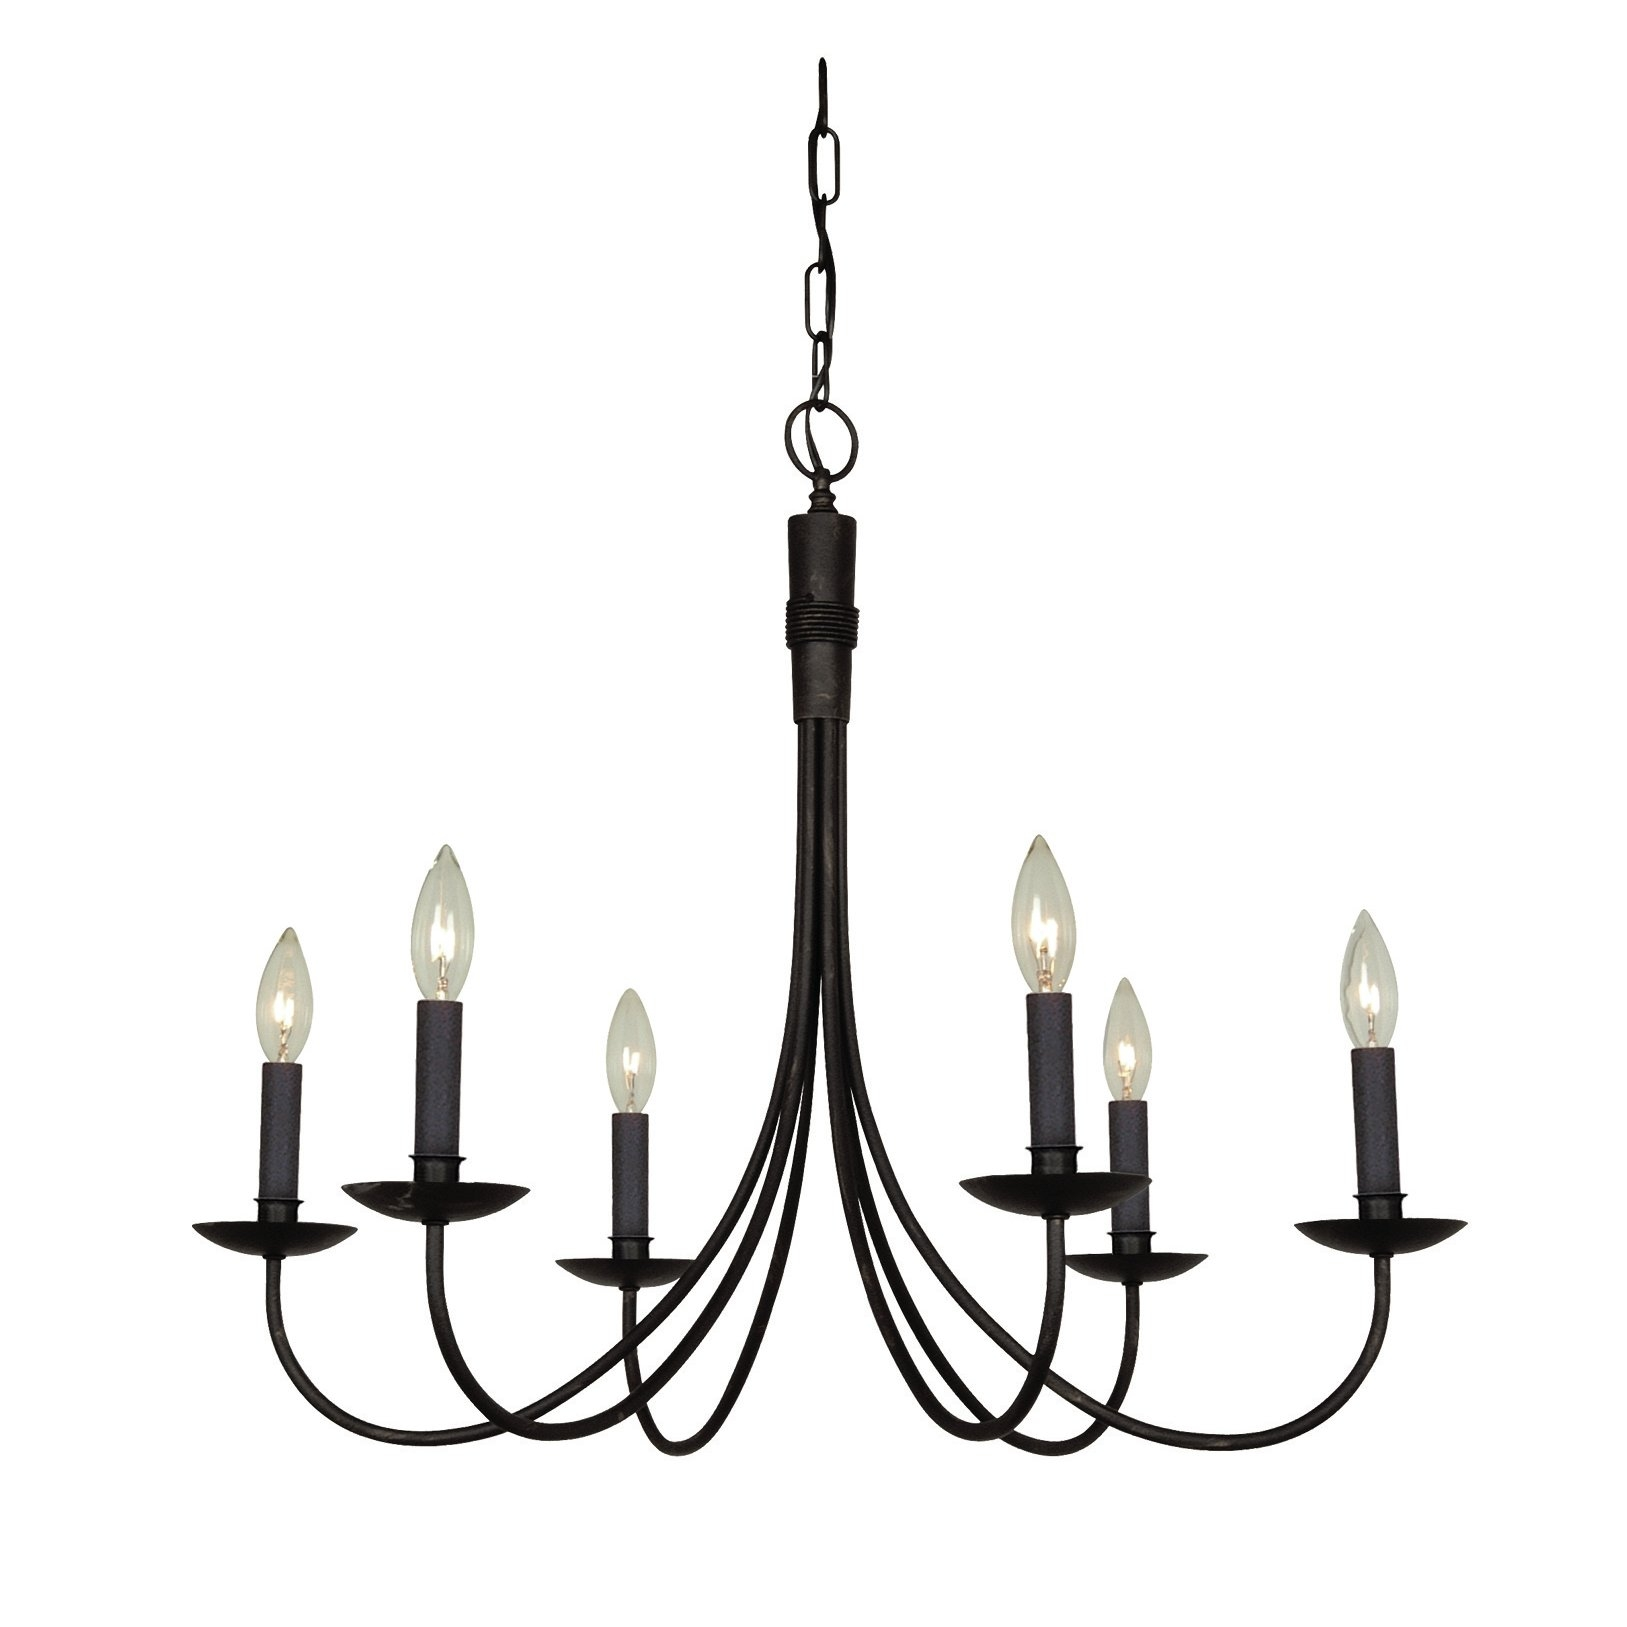 Dar Home Co Gavin 6 Light Candle Style Chandelier Reviews With Regard To Candle Light Chandelier (Image 8 of 15)